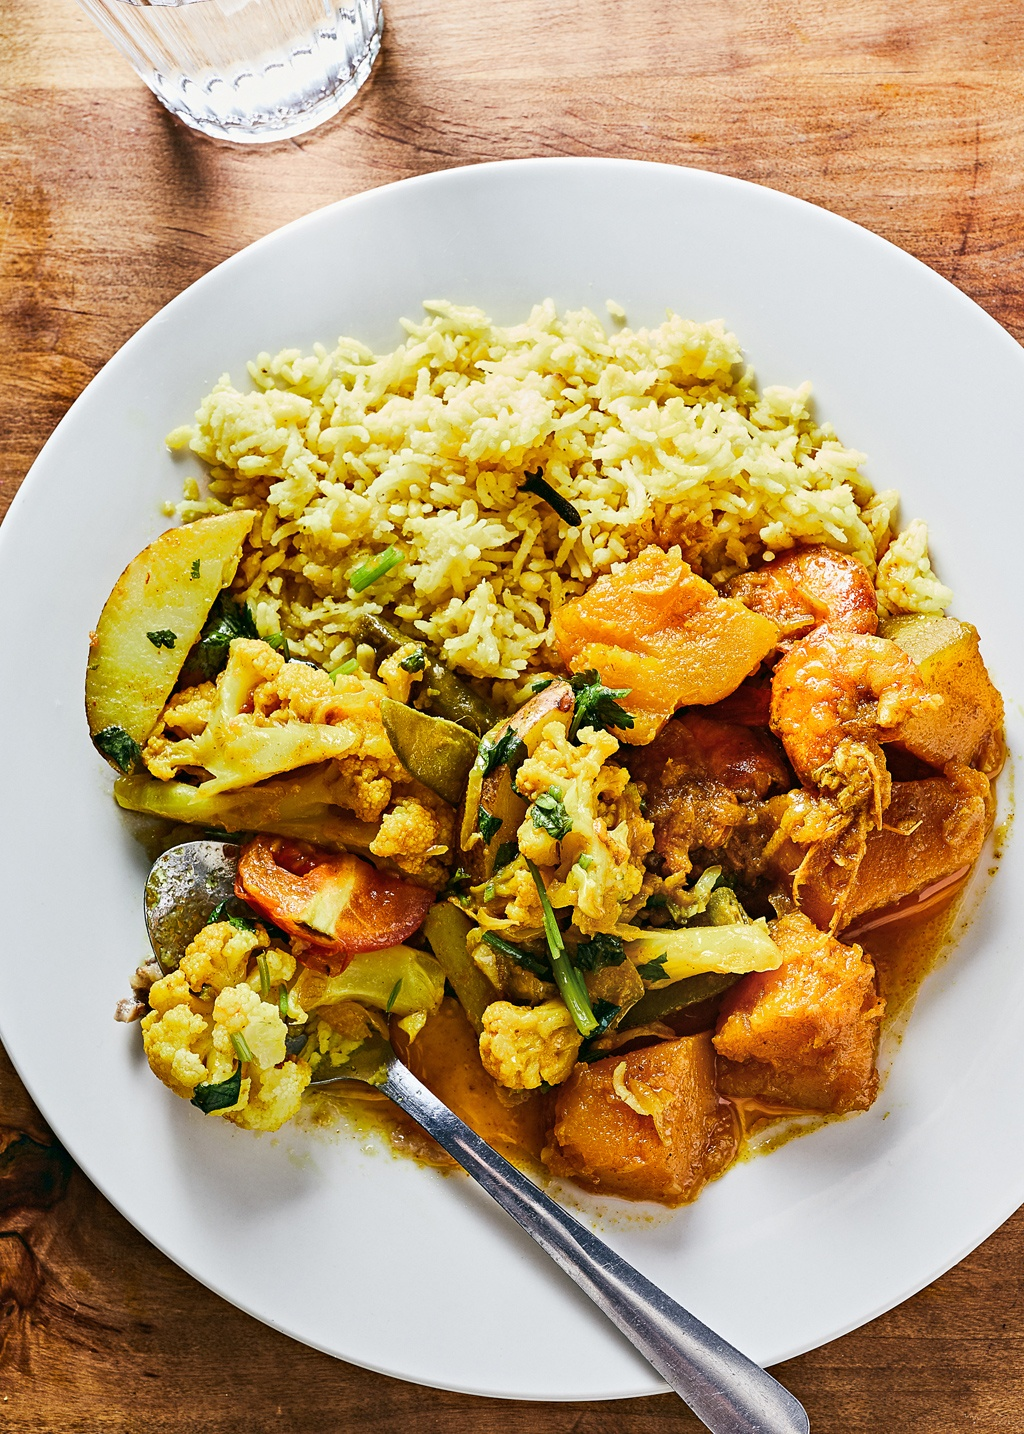 A dish at Korai Kitchen, a buffet-style Bangladeshi restaurant in Jersey City, Dec 8, 2018. Bangladeshi cuisine is relatively rare in the United States; Korai's small menu is more akin to home cooking. Here, clockwise from top, khichuri, pumpkin shrimp curry and mixed vegetables cooked in spice. (Jenny Huang/The New York Times)